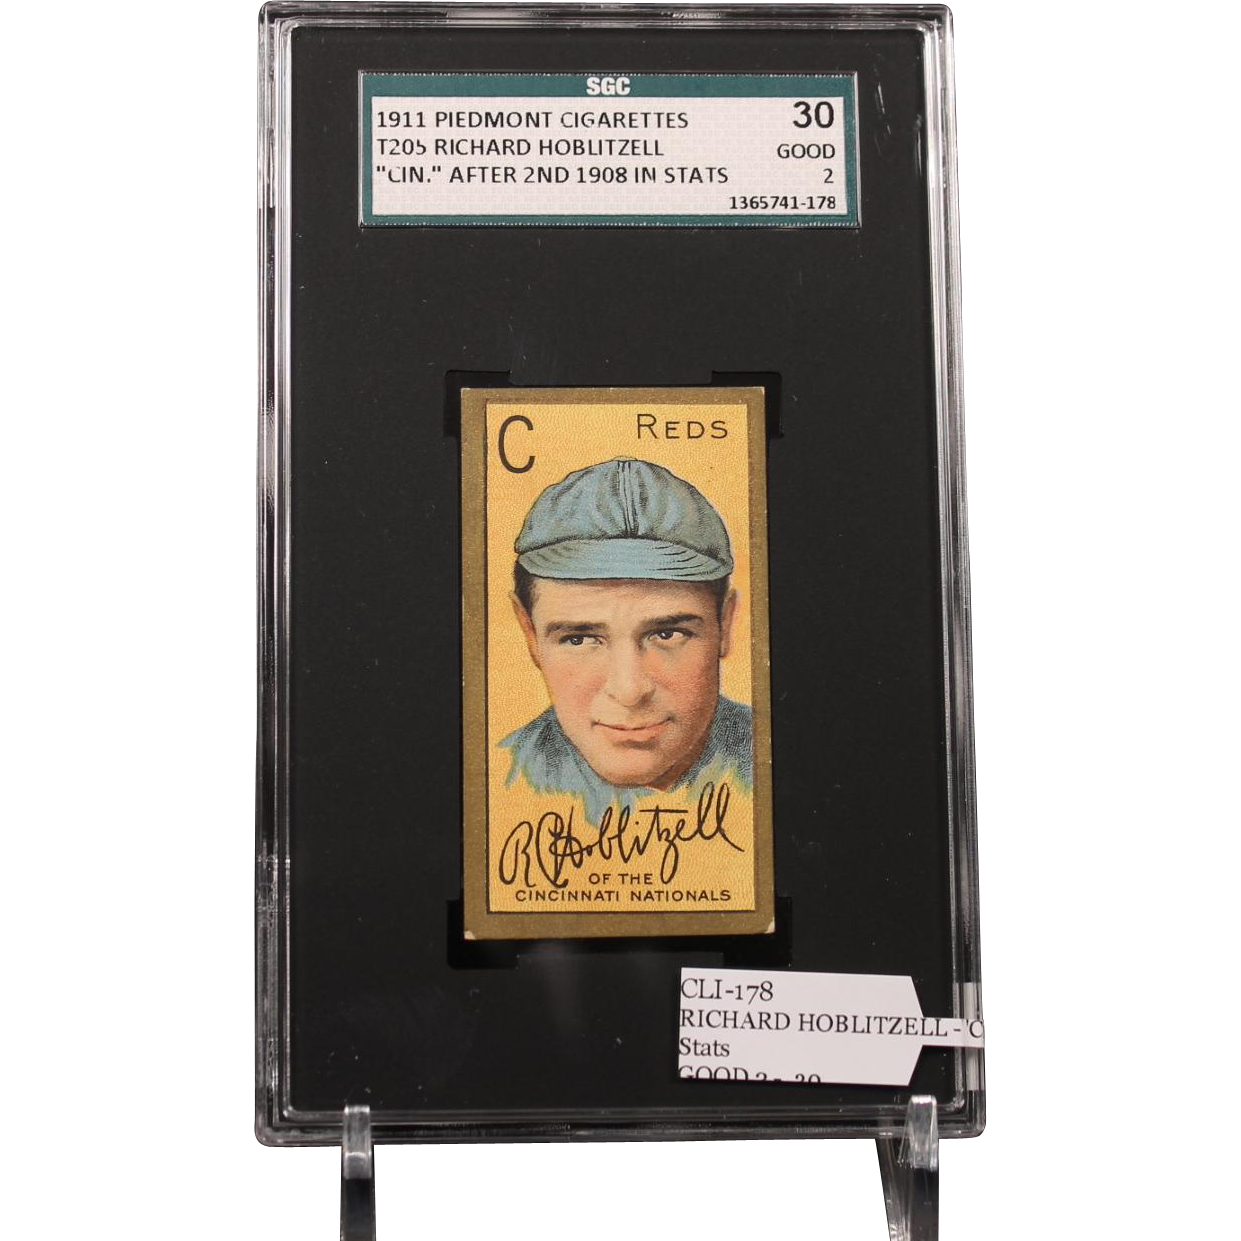 T205 RICHARD HOBLITZELL - 'Cin.'' After 2nd 1908 in Stats SGC grade 30 GOOD 2